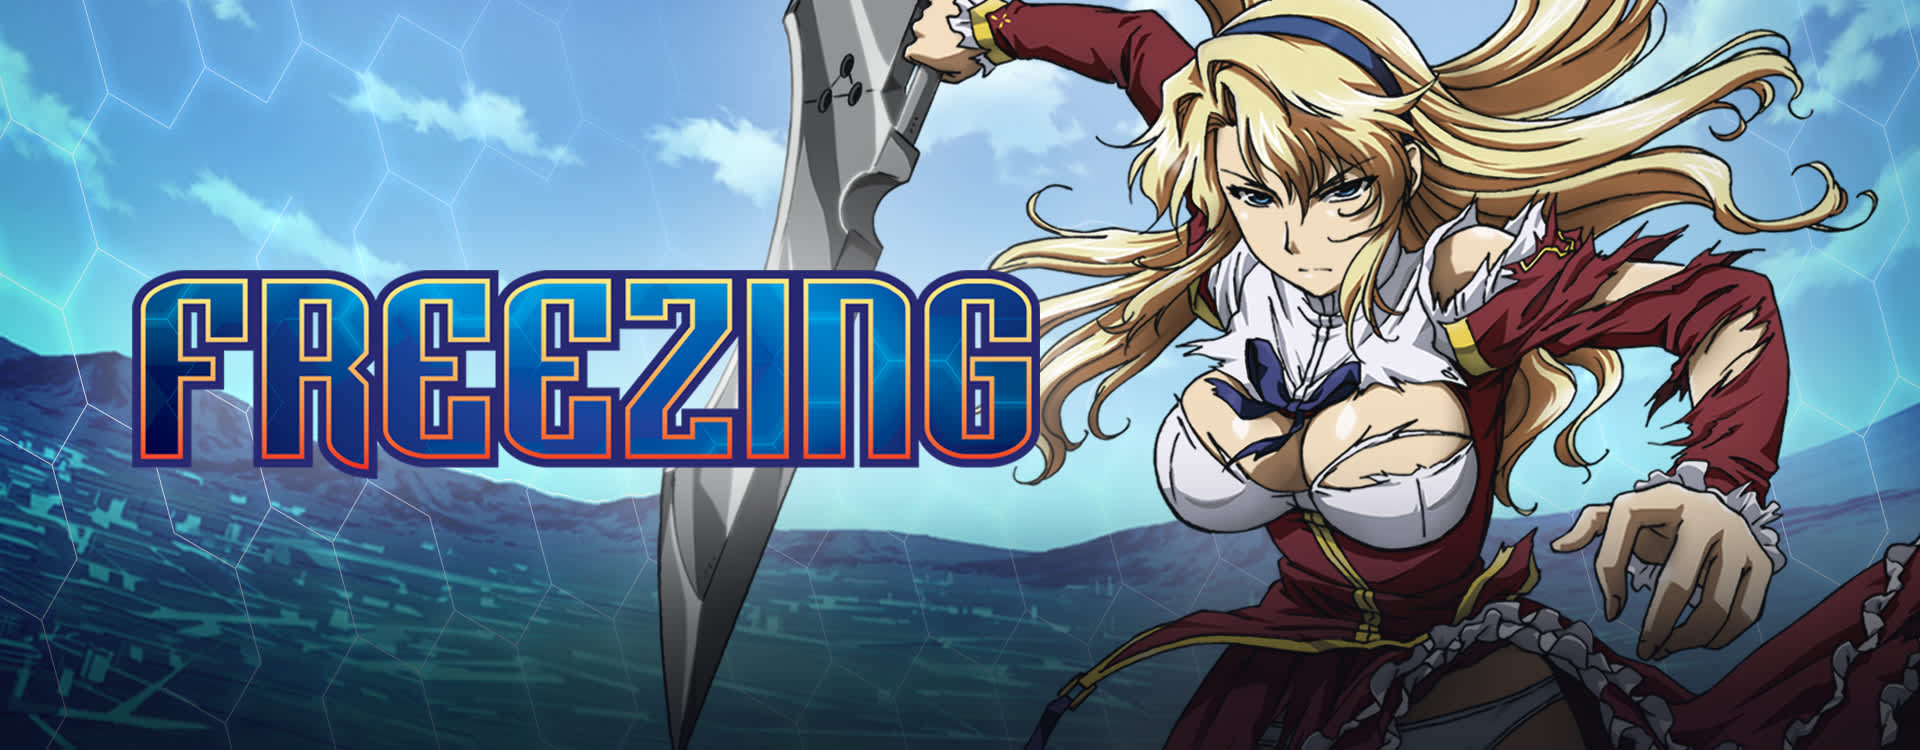 stream watch freezing episodes online sub dub